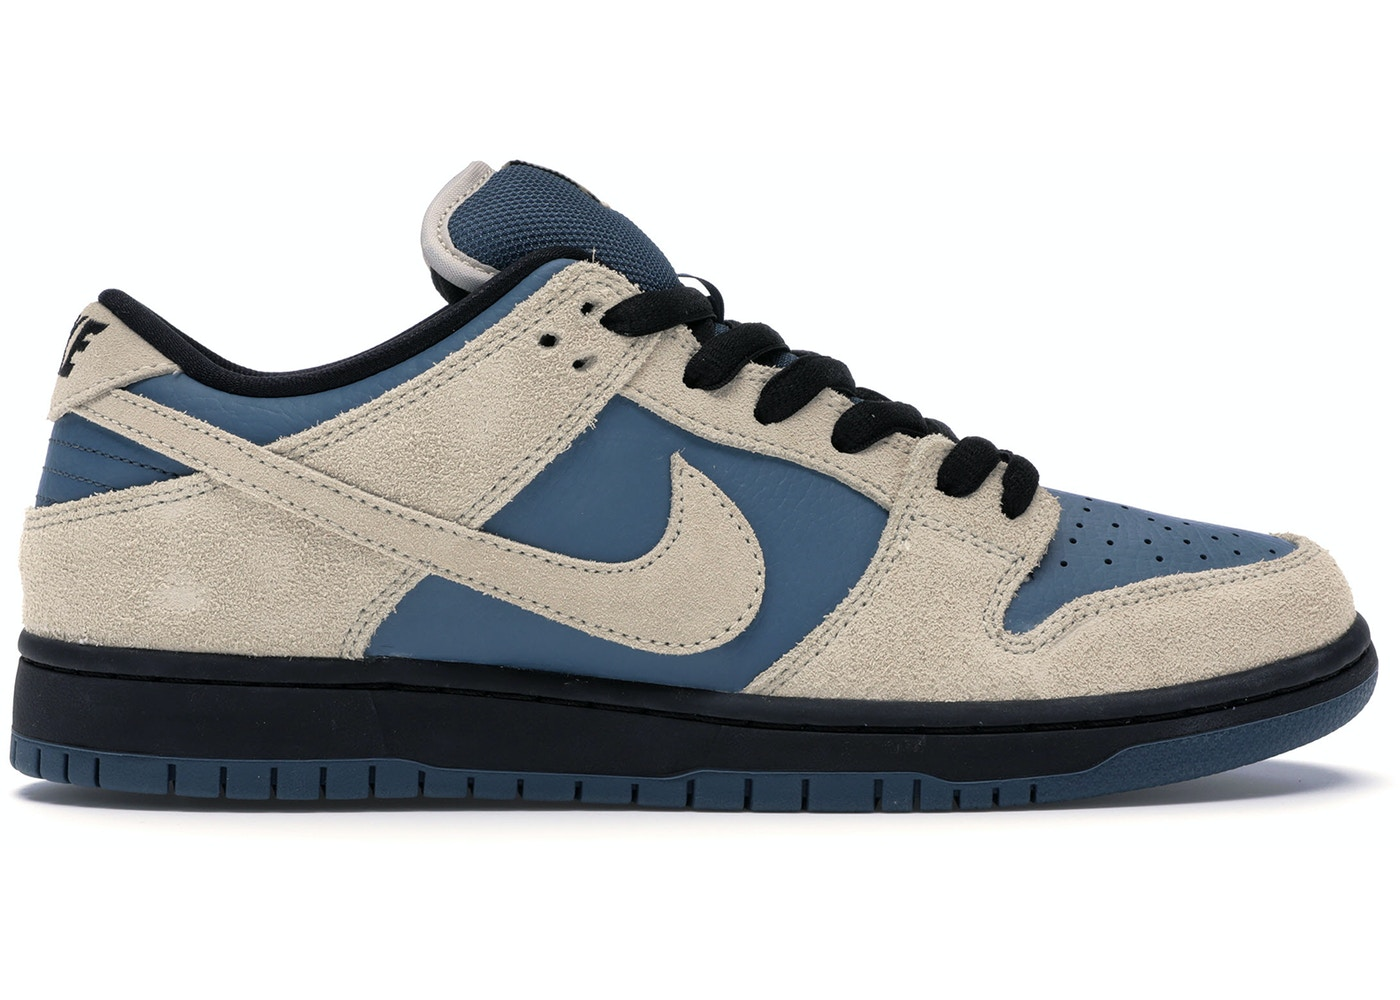 new products 605e4 ef170 Buy Nike SB Shoes   Deadstock Sneakers